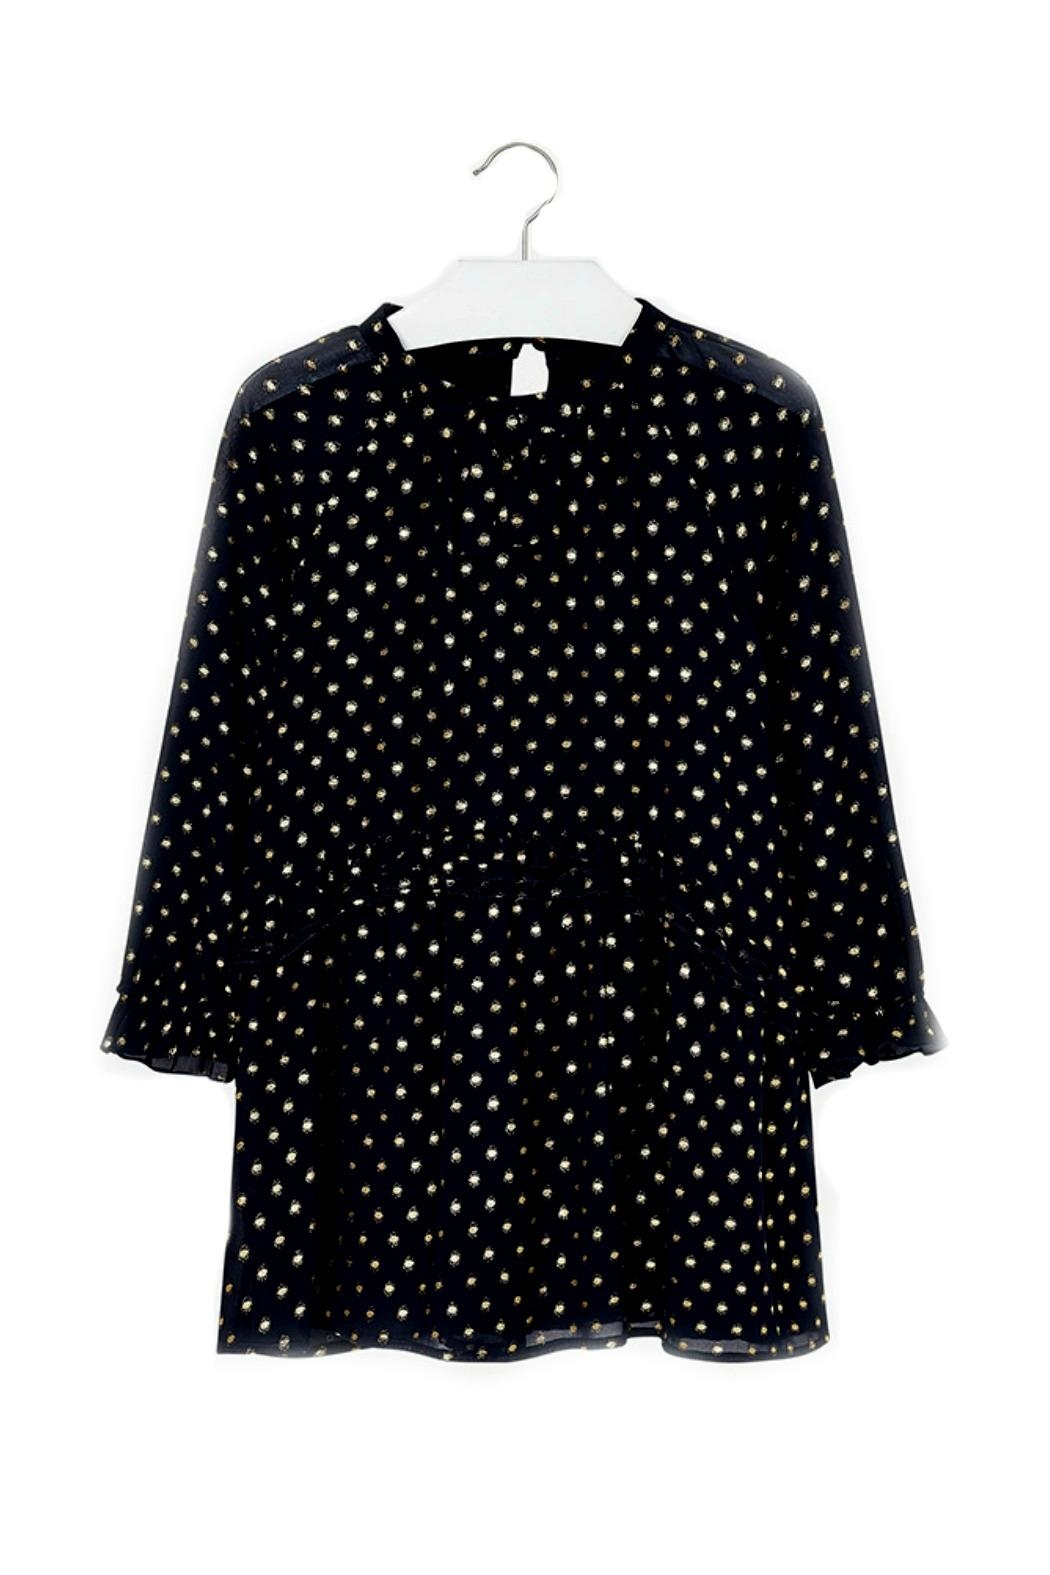 Mayoral Chiffon-Navy-Dress-With-Gold-Metallic-Dots - Front Cropped Image